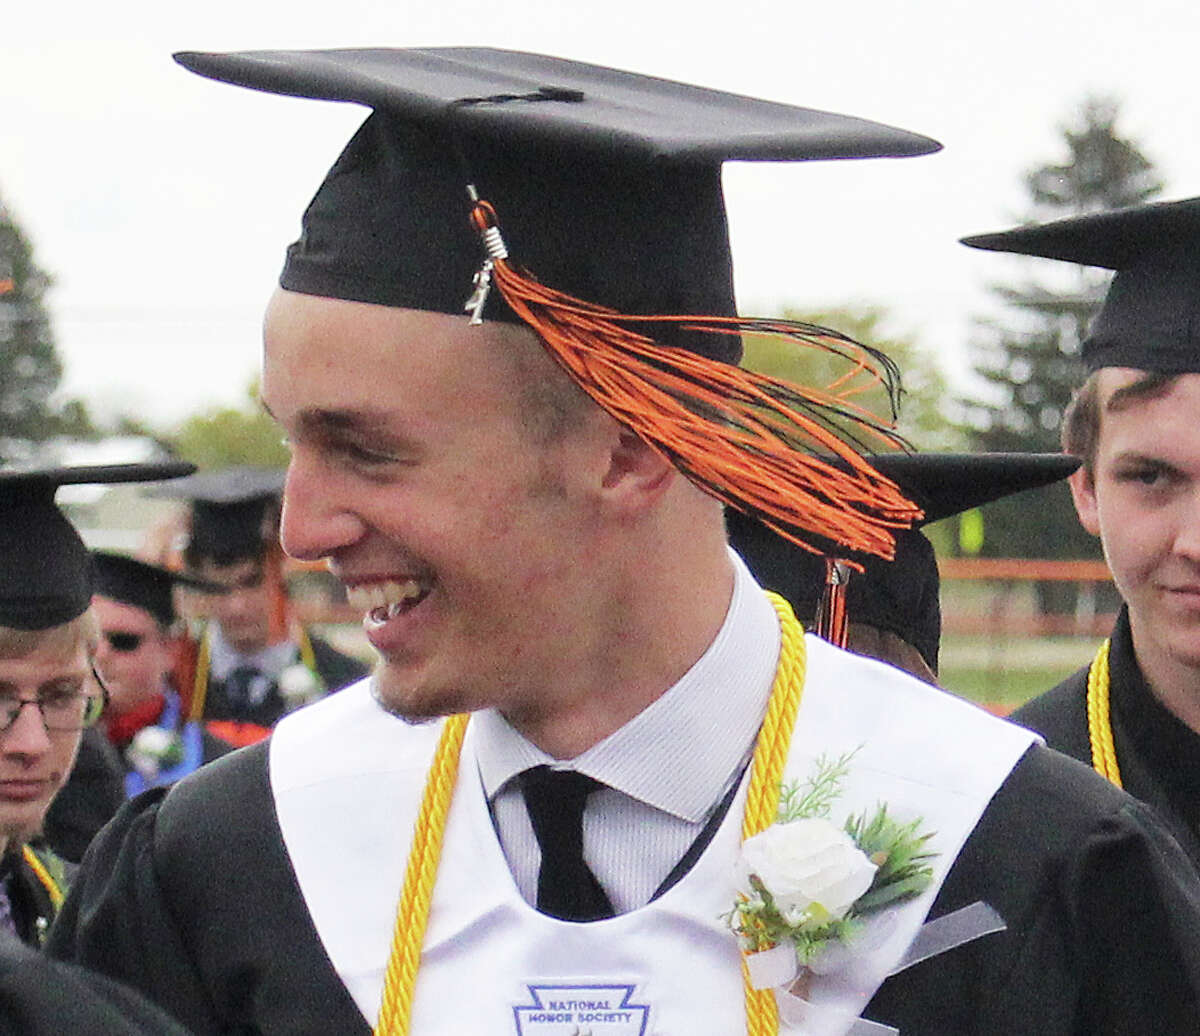 Harbor Beach High School held commencement ceremonies for the Class of 2021 on Sunday afternoon.